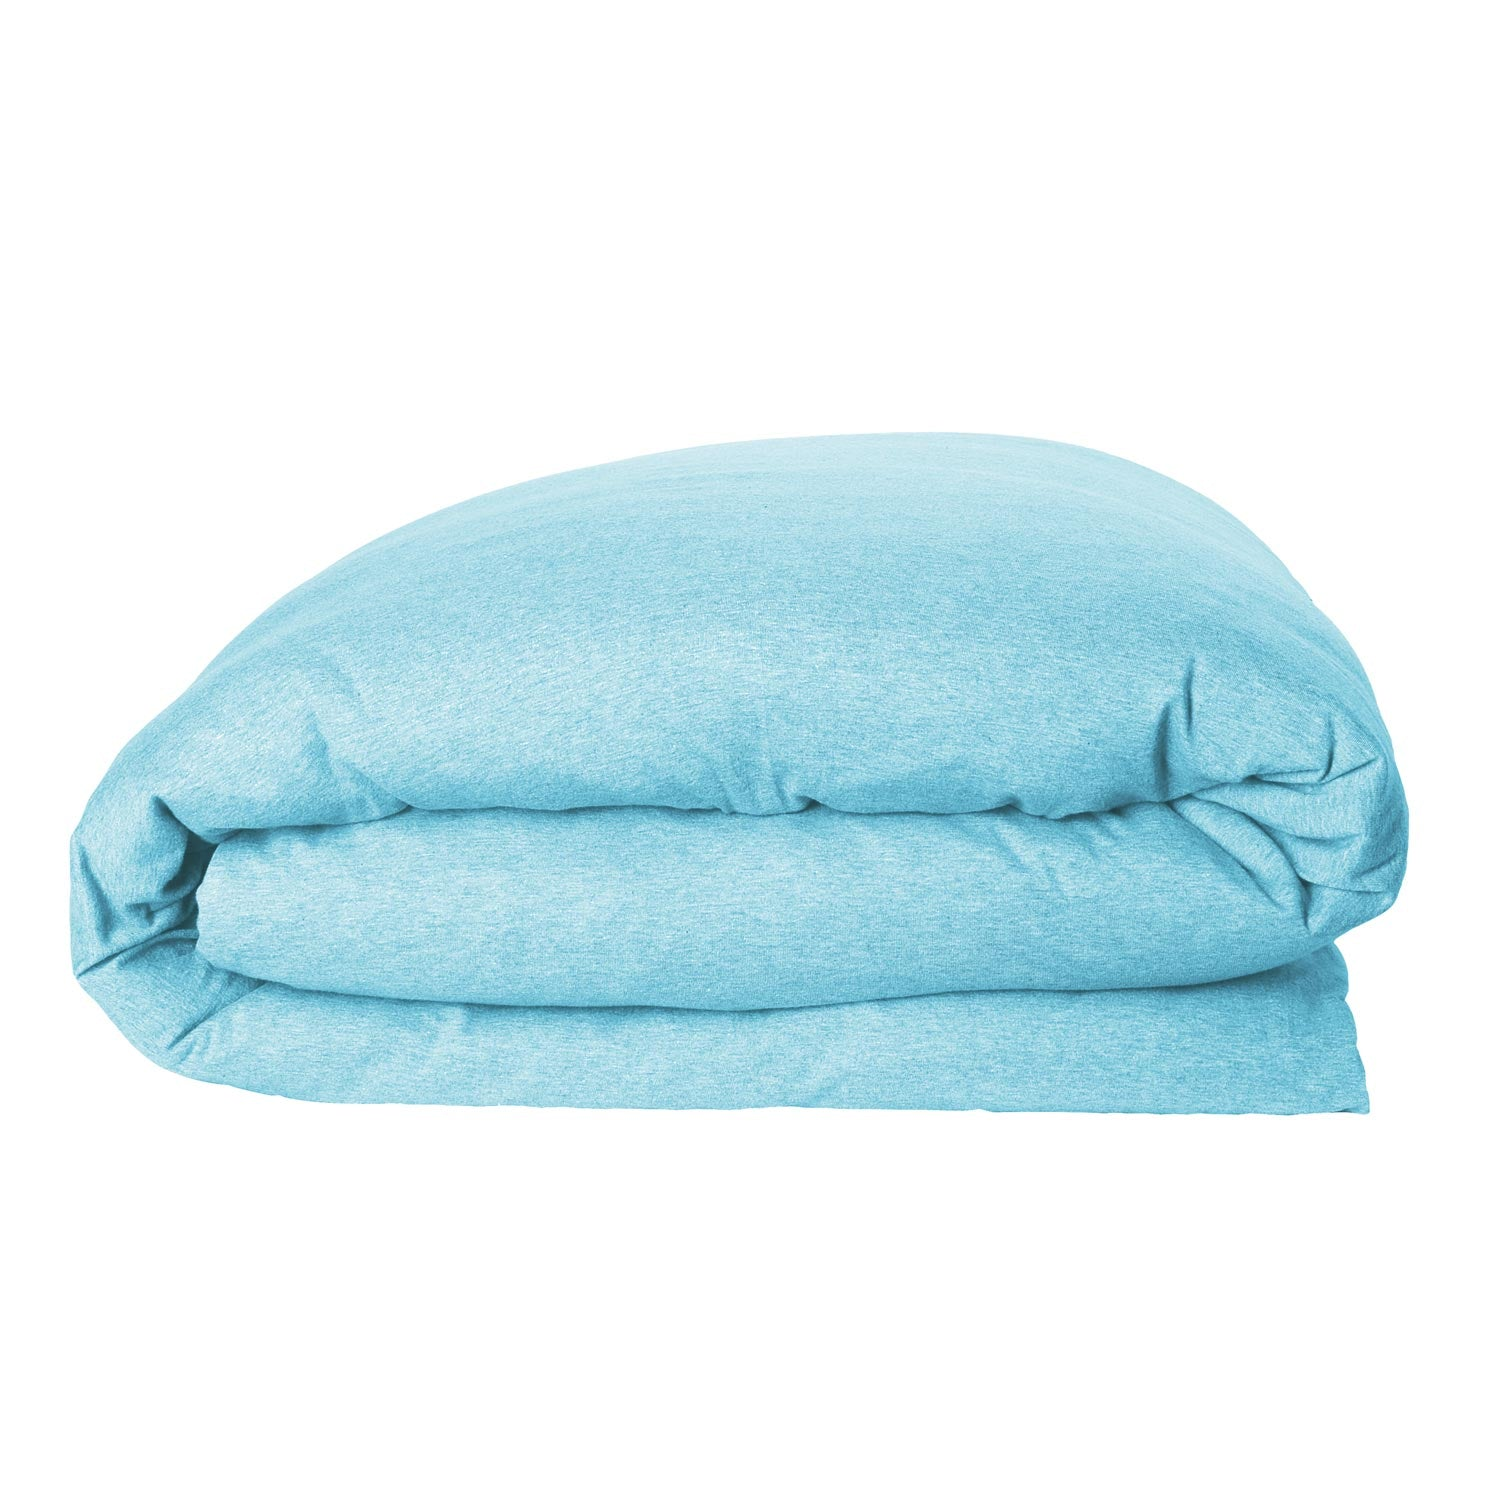 Pool Blue Cotton Quilt Cover - Children's bedding - $99 |My House Loves - $99